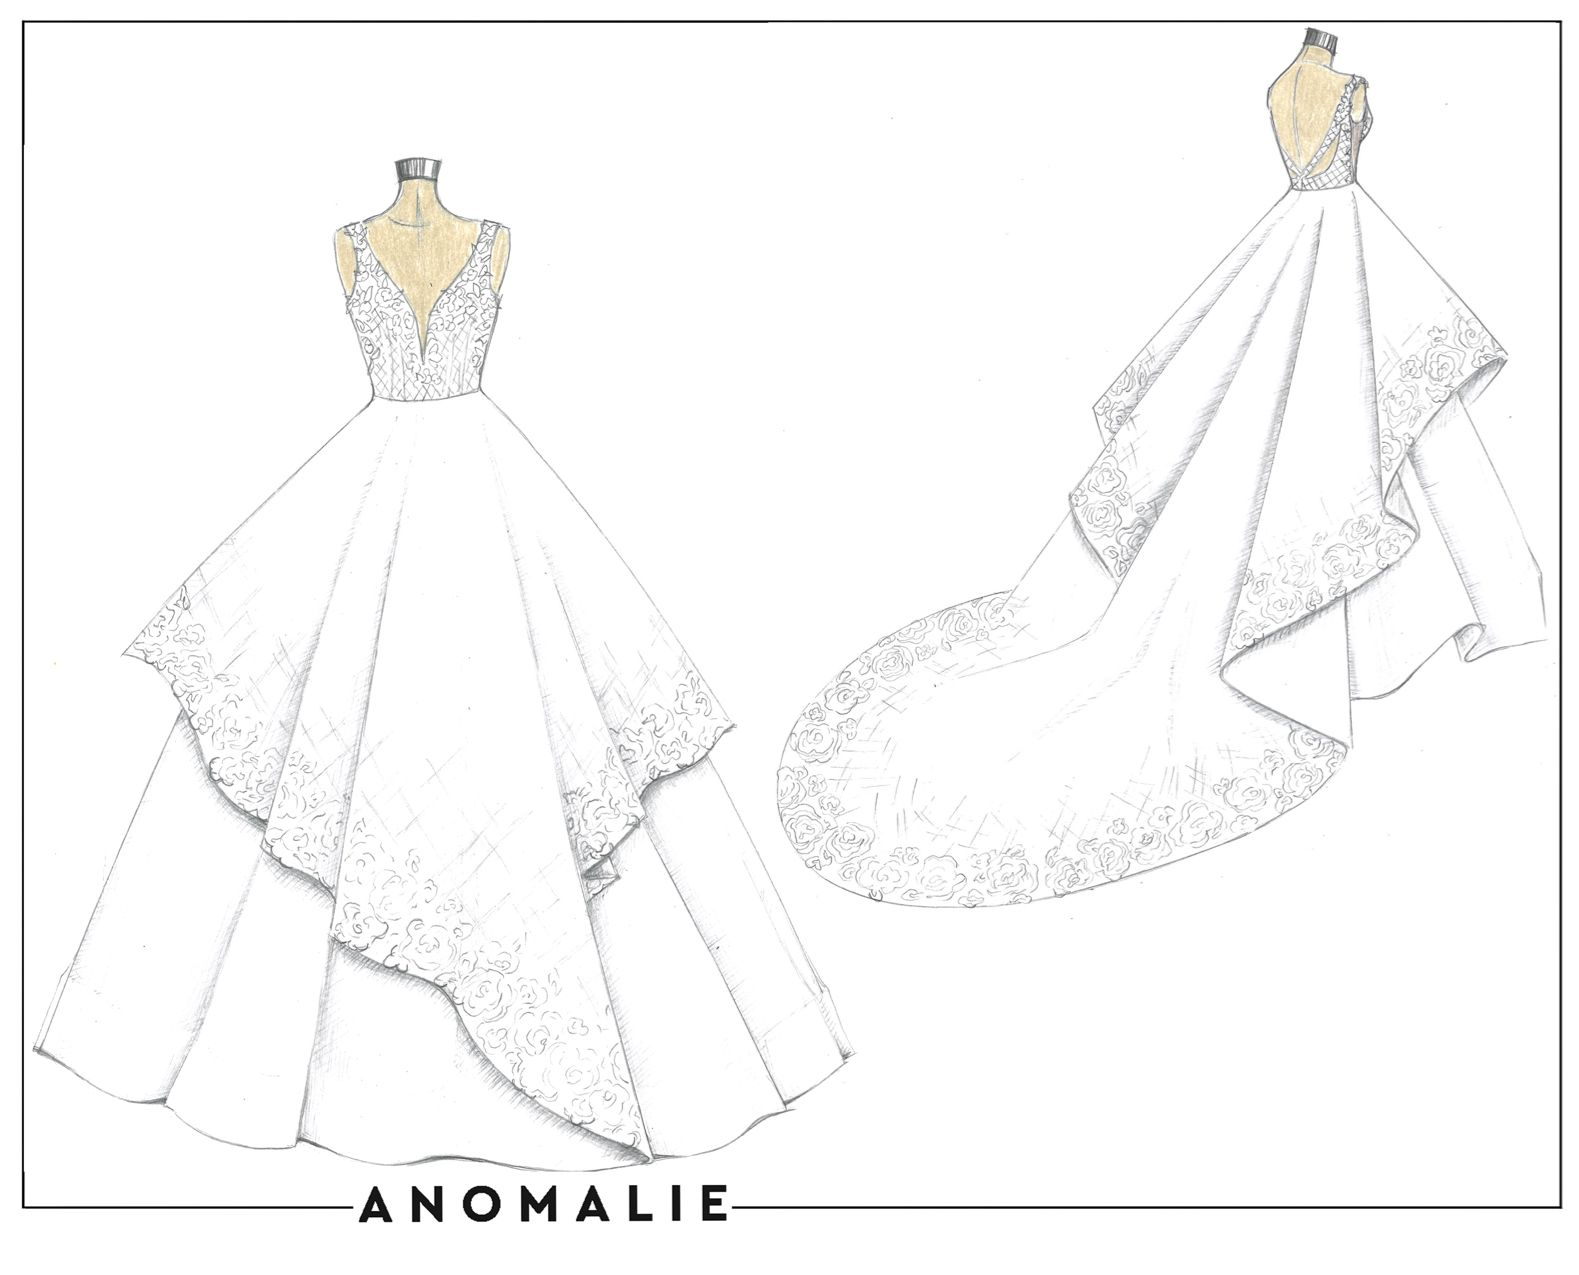 Anomalie Custom Wedding Dress Review Sketch Wedding Dress Drawings Wedding Dress Sketches Custom Wedding Dress Sketch